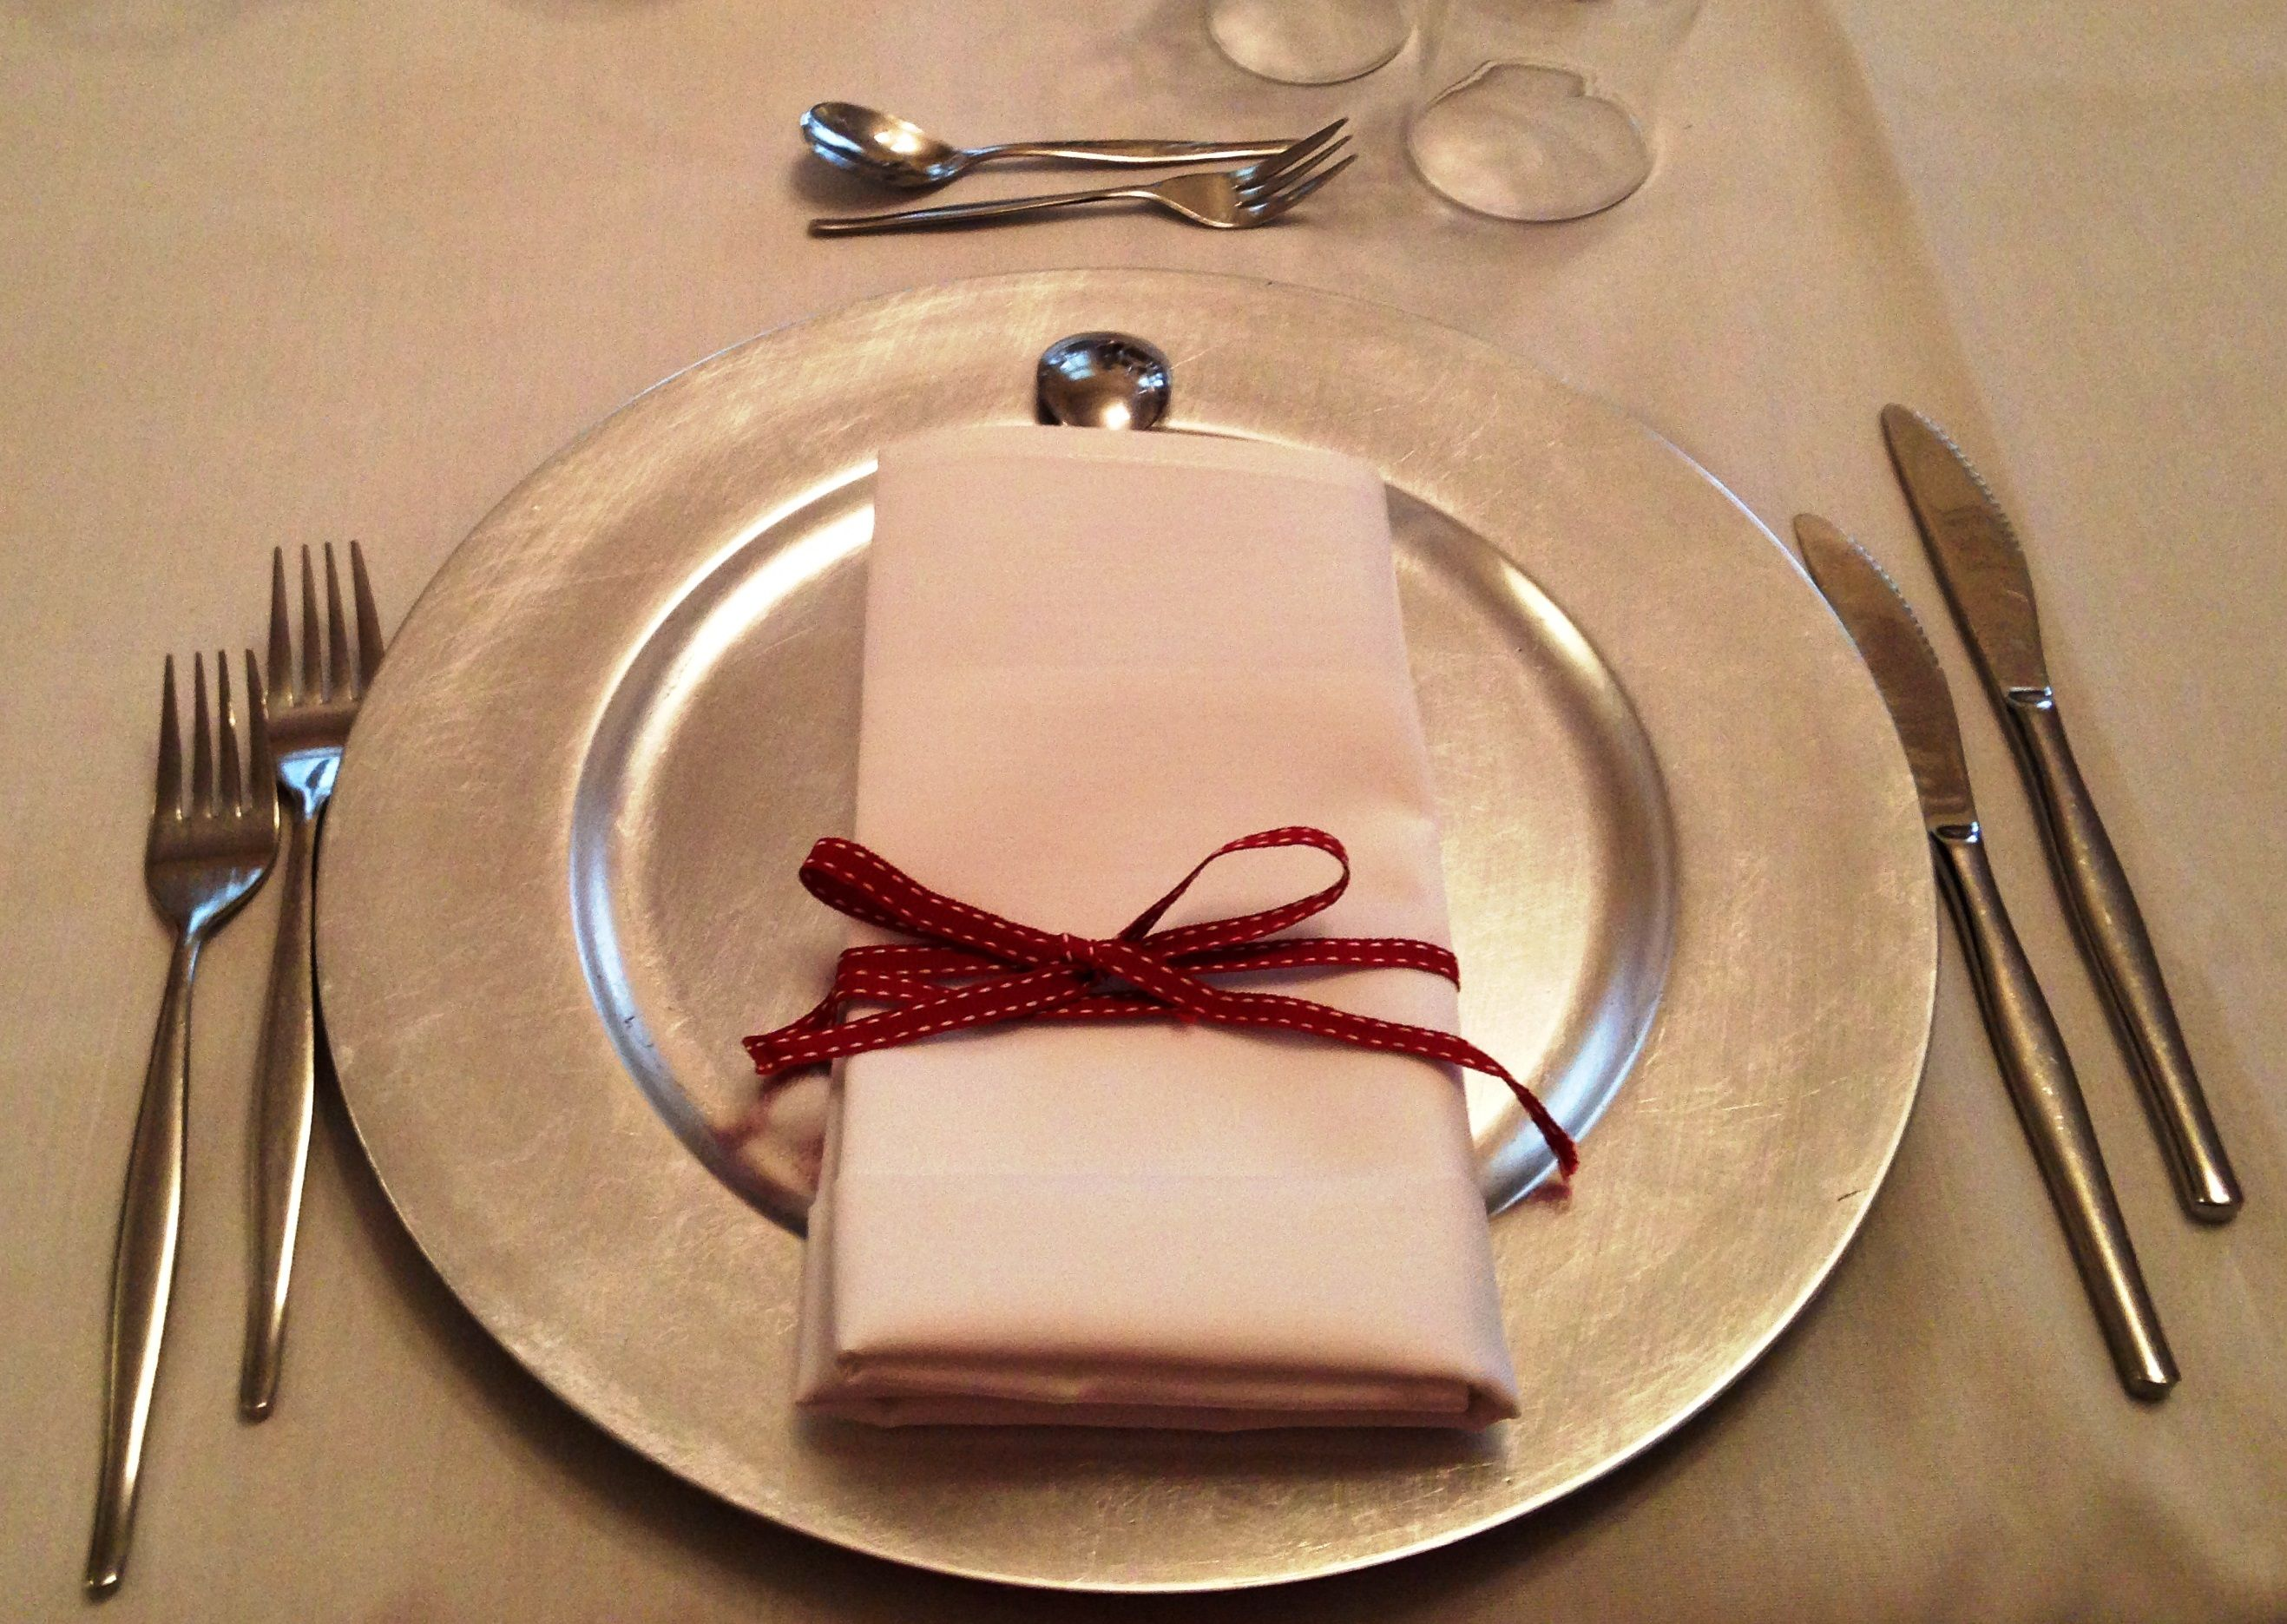 Silver charger plate with red ribbon wedding decorations abbey of silver charger plate with red ribbon wedding decorations abbey of the roses qld australia junglespirit Choice Image